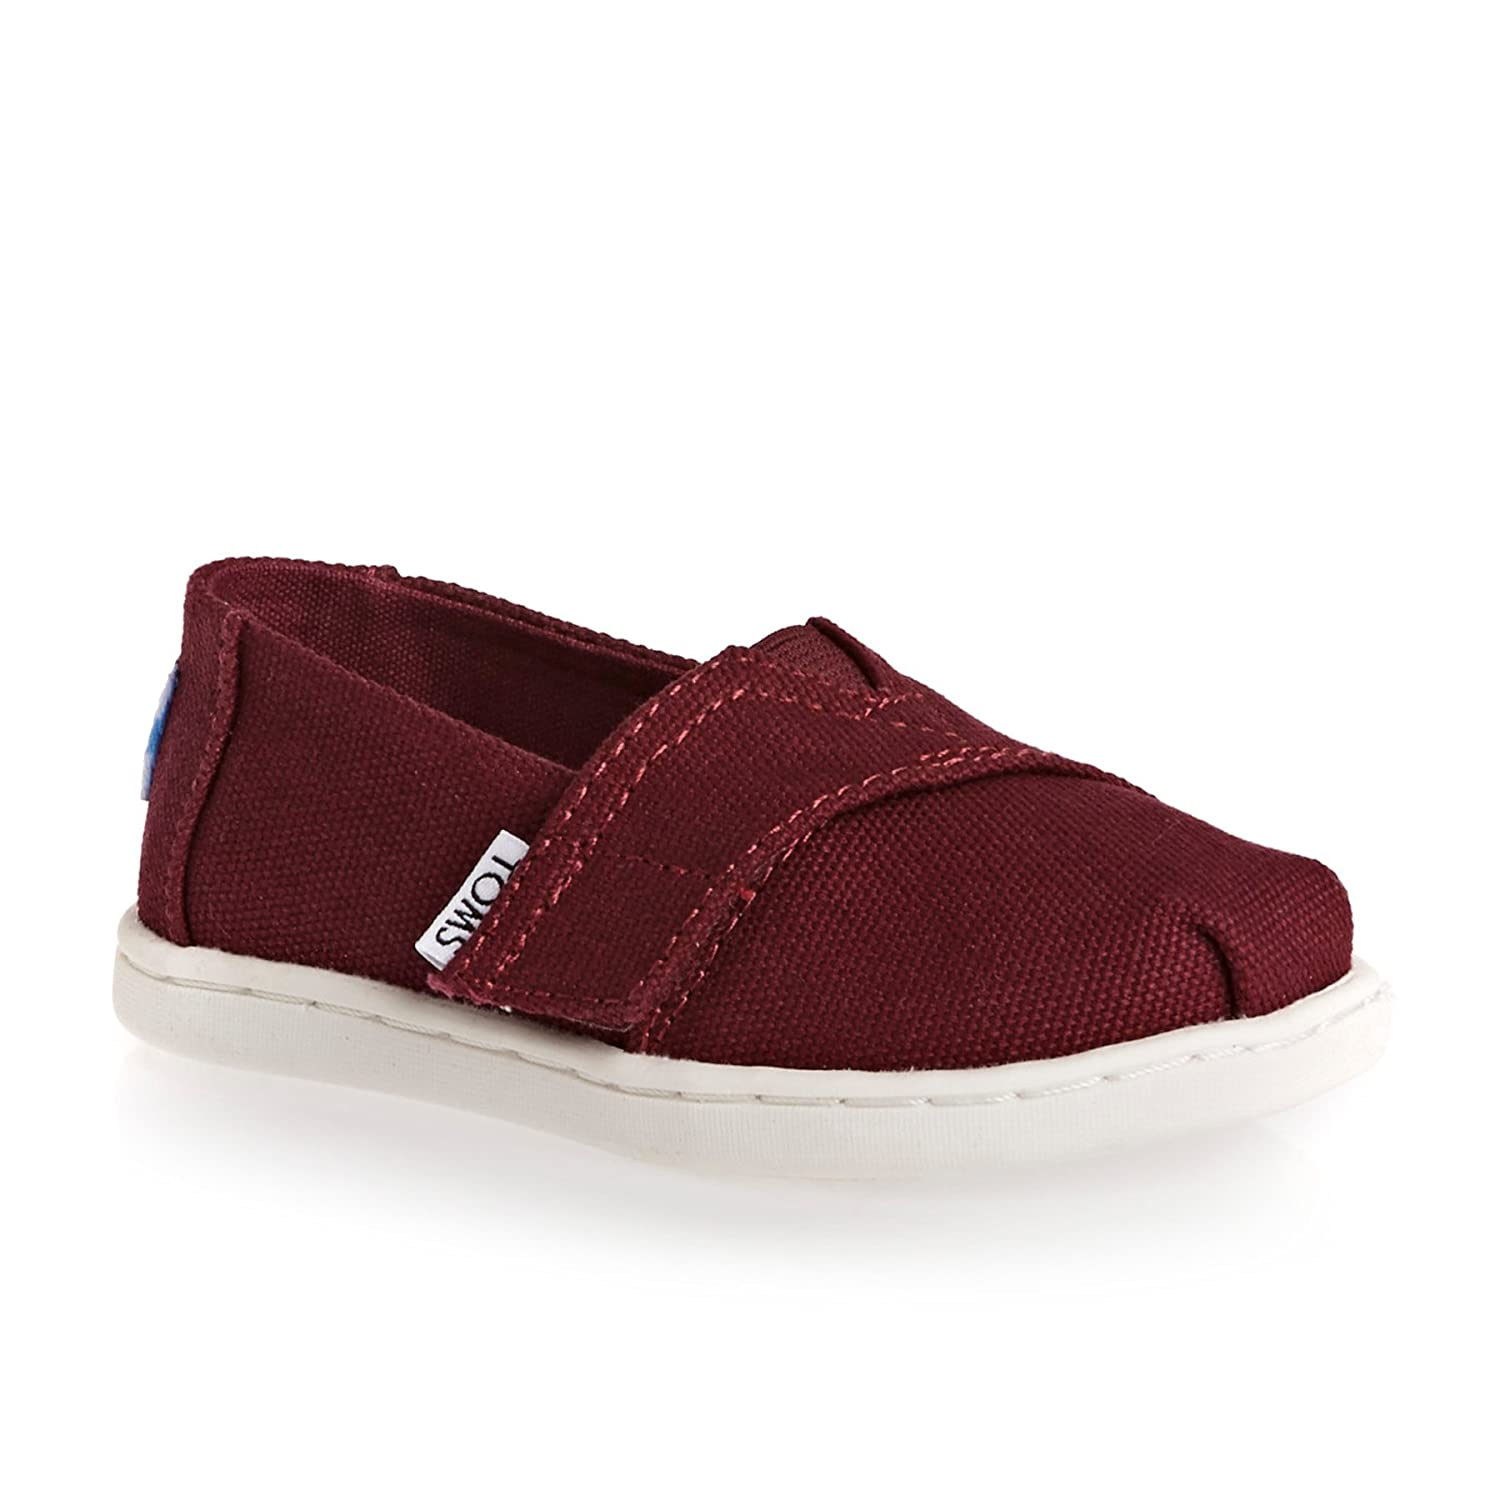 13ffcf066ff TOMS Unisex Kids  Youth Classic Espadrilles  Amazon.co.uk  Shoes   Bags